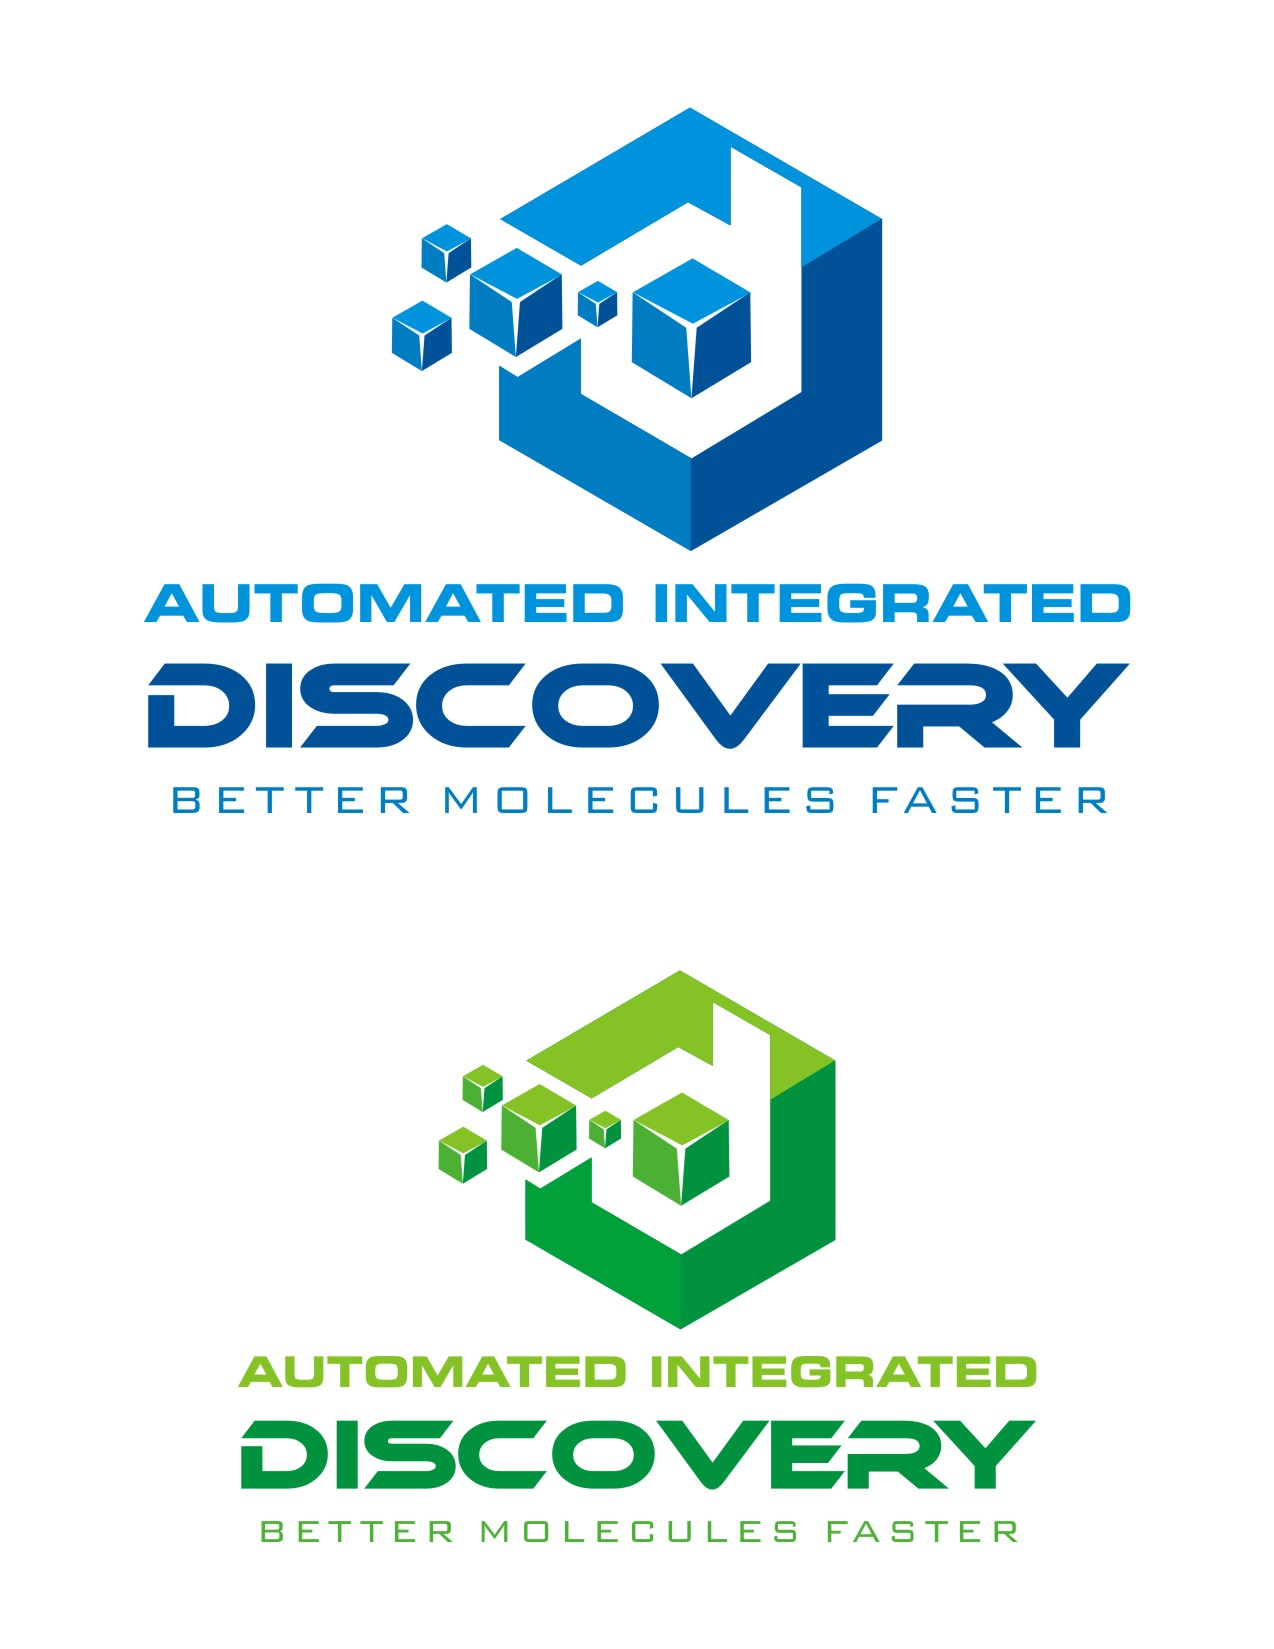 Logo Design by Spider Graphics - Entry No. 83 in the Logo Design Contest Automated Integrated Discovery  Logo Design.